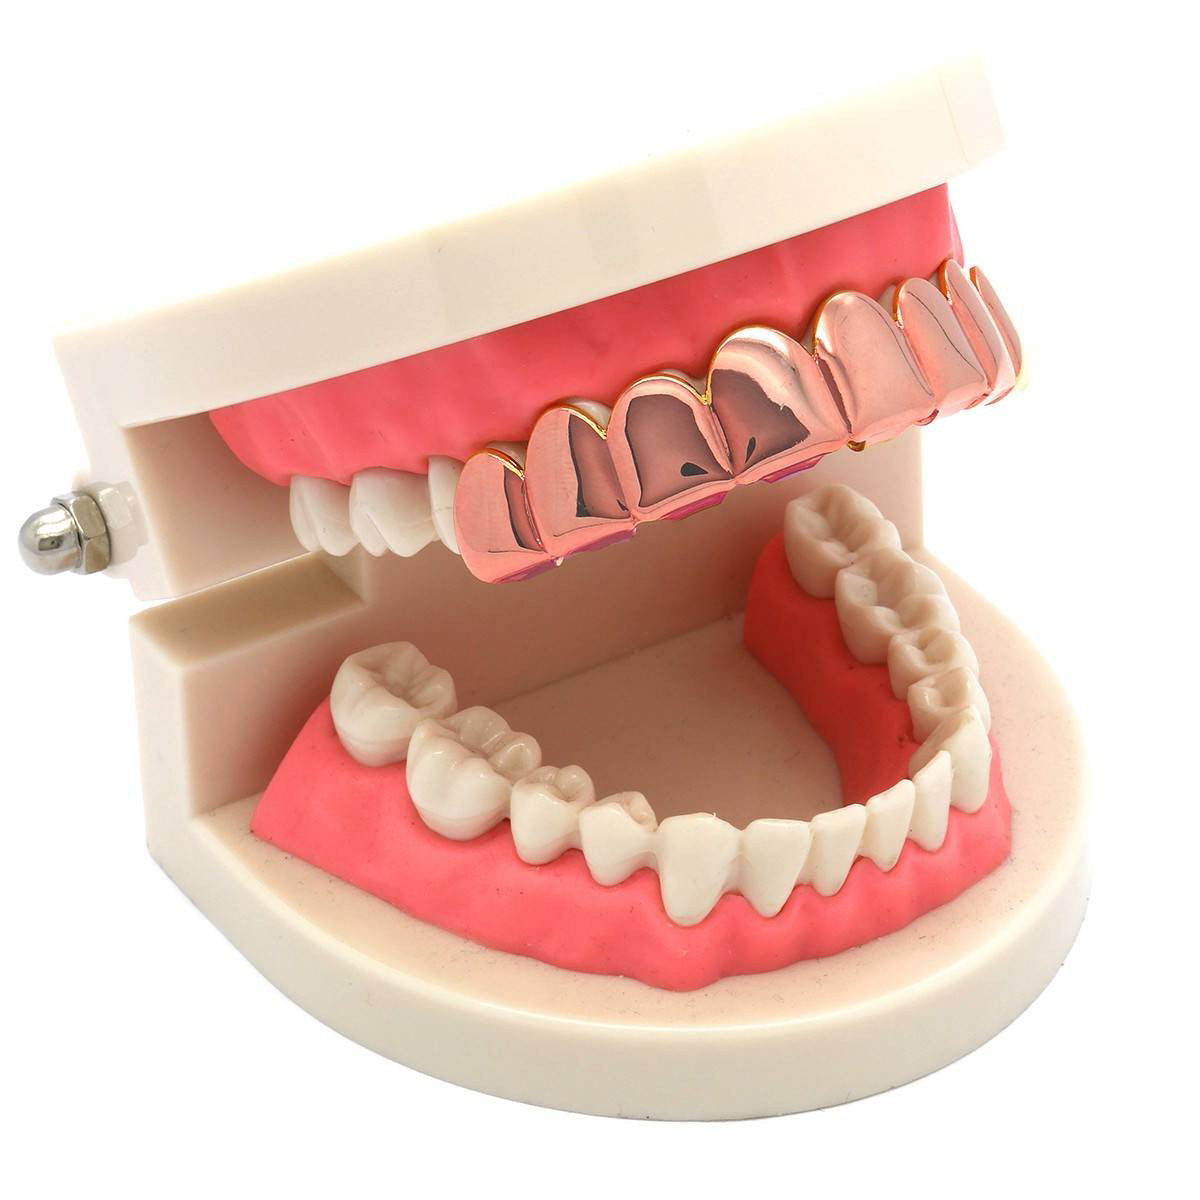 ROSE GOLD TOP GRILLZ 8 TOOTH